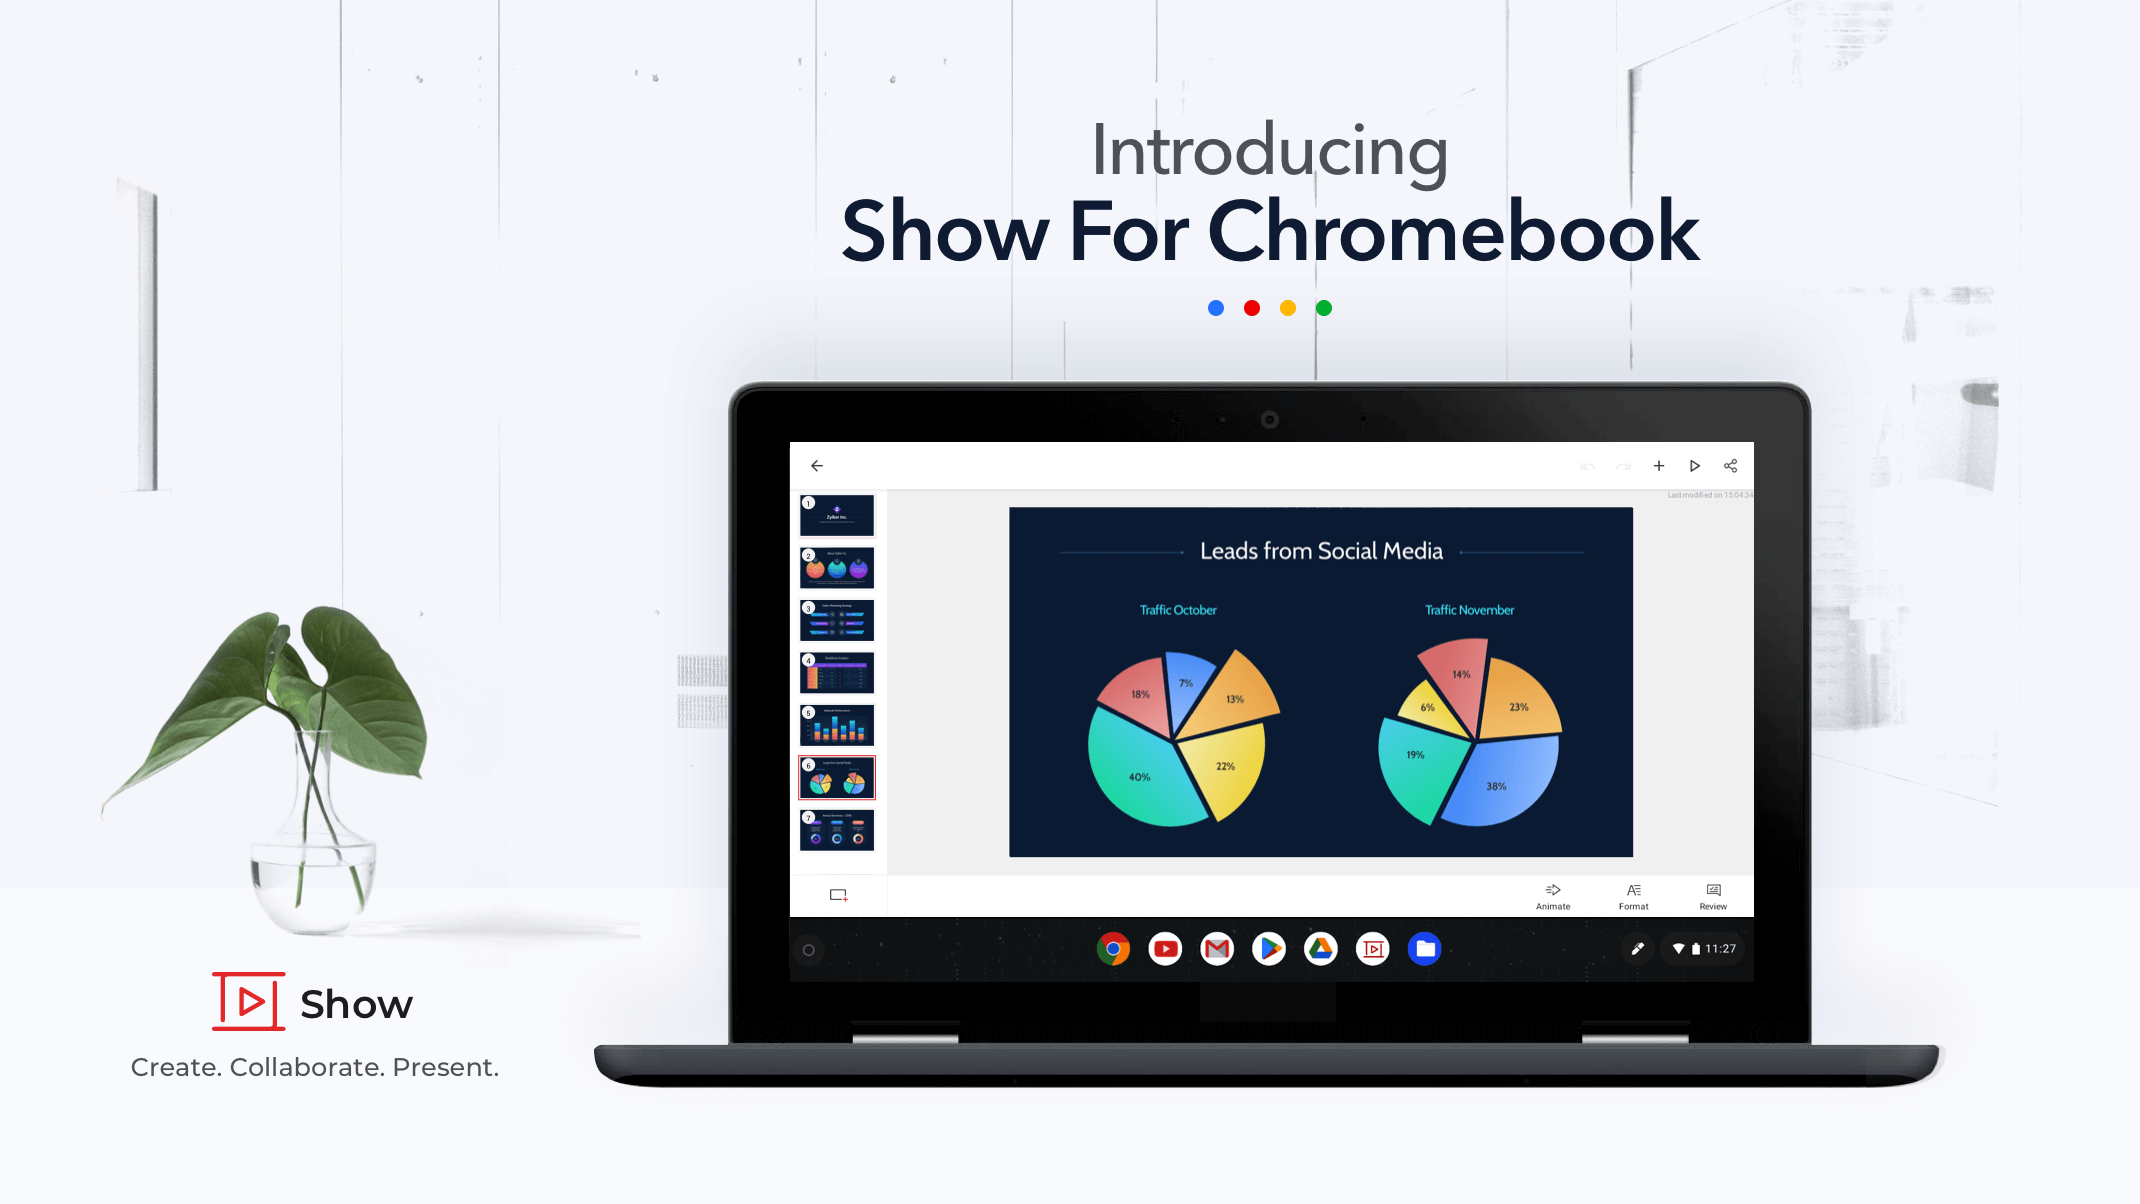 Introducing Zoho Show for Chromebook: An intuitive presentation tool perfect for your device